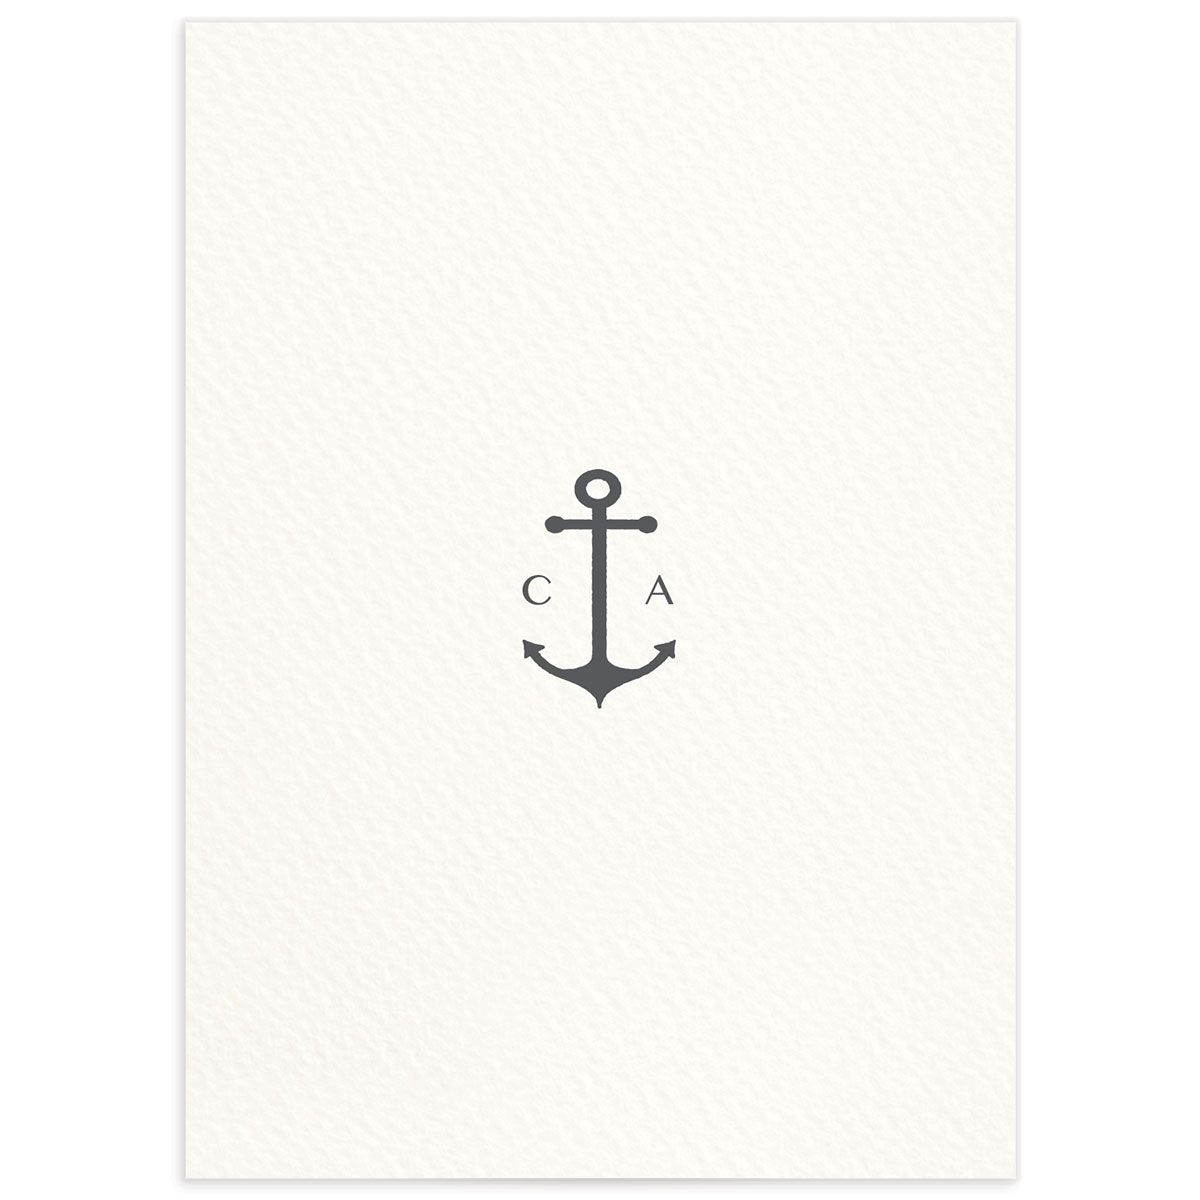 Coastal Love wedding details card in grey back